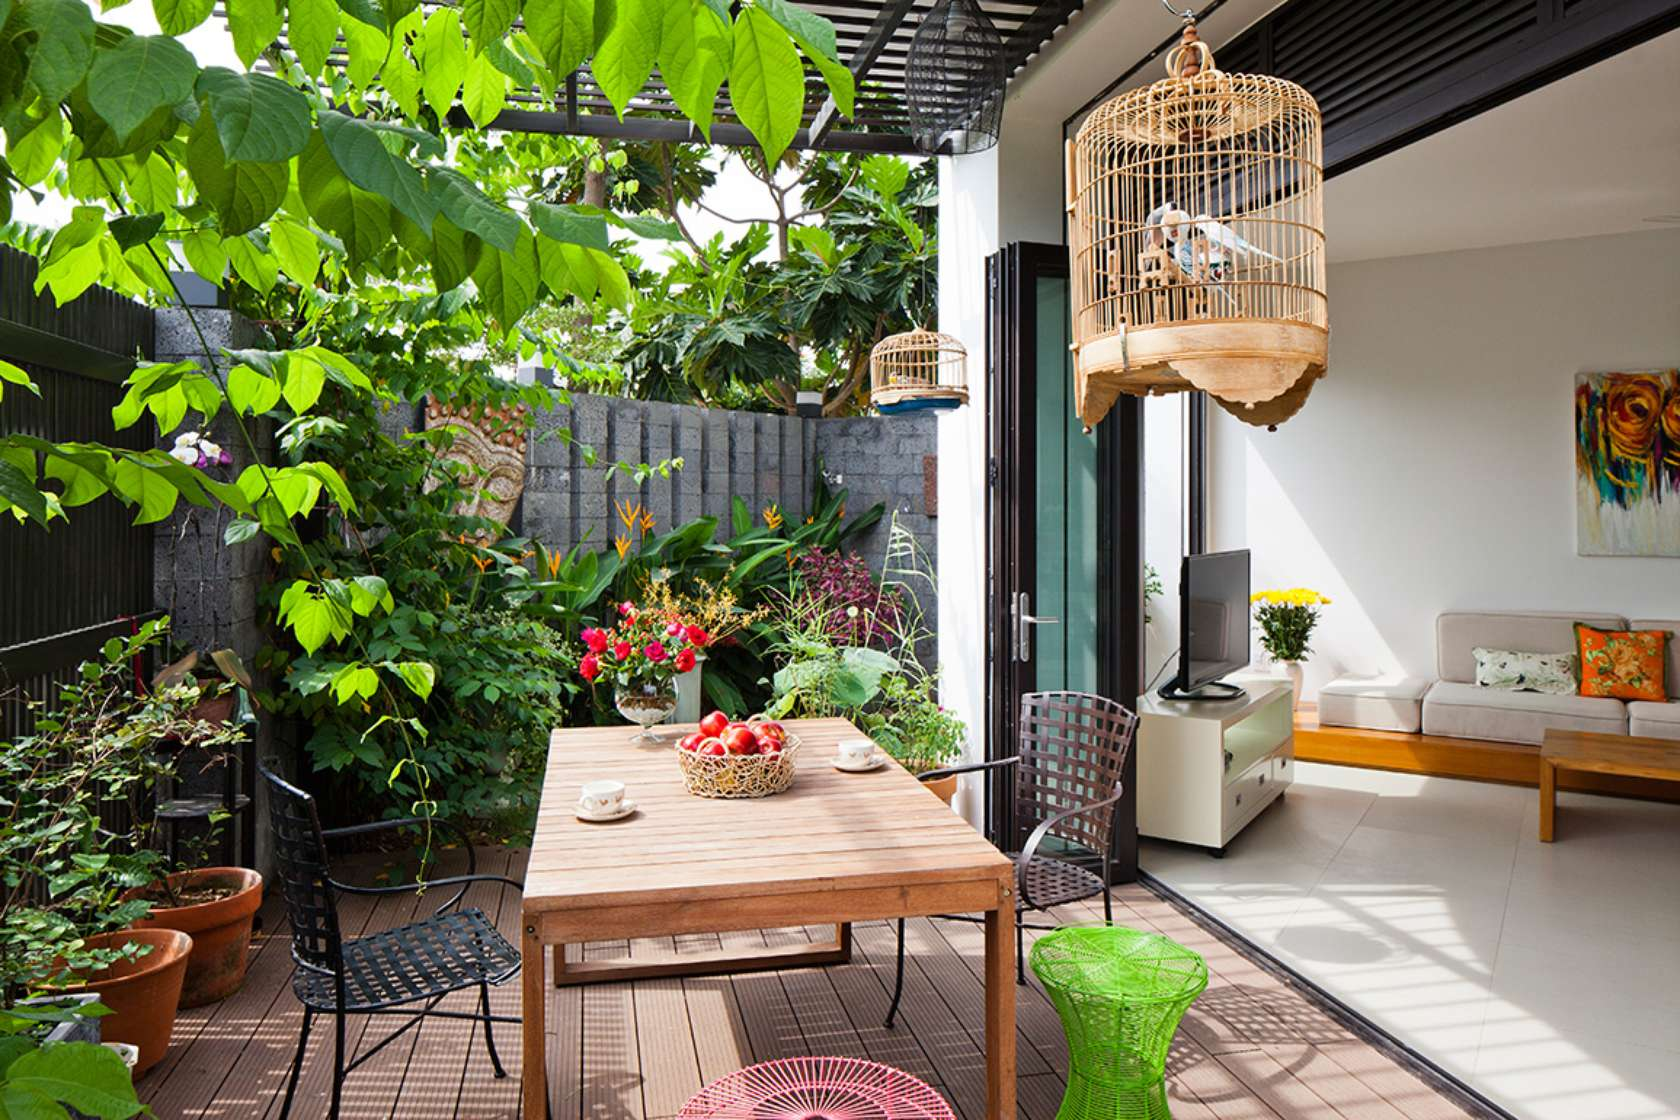 Newspaper of the West praised the words of the 3-storey townhouse with beautiful garden in Saigon - Beautiful House No. (8)